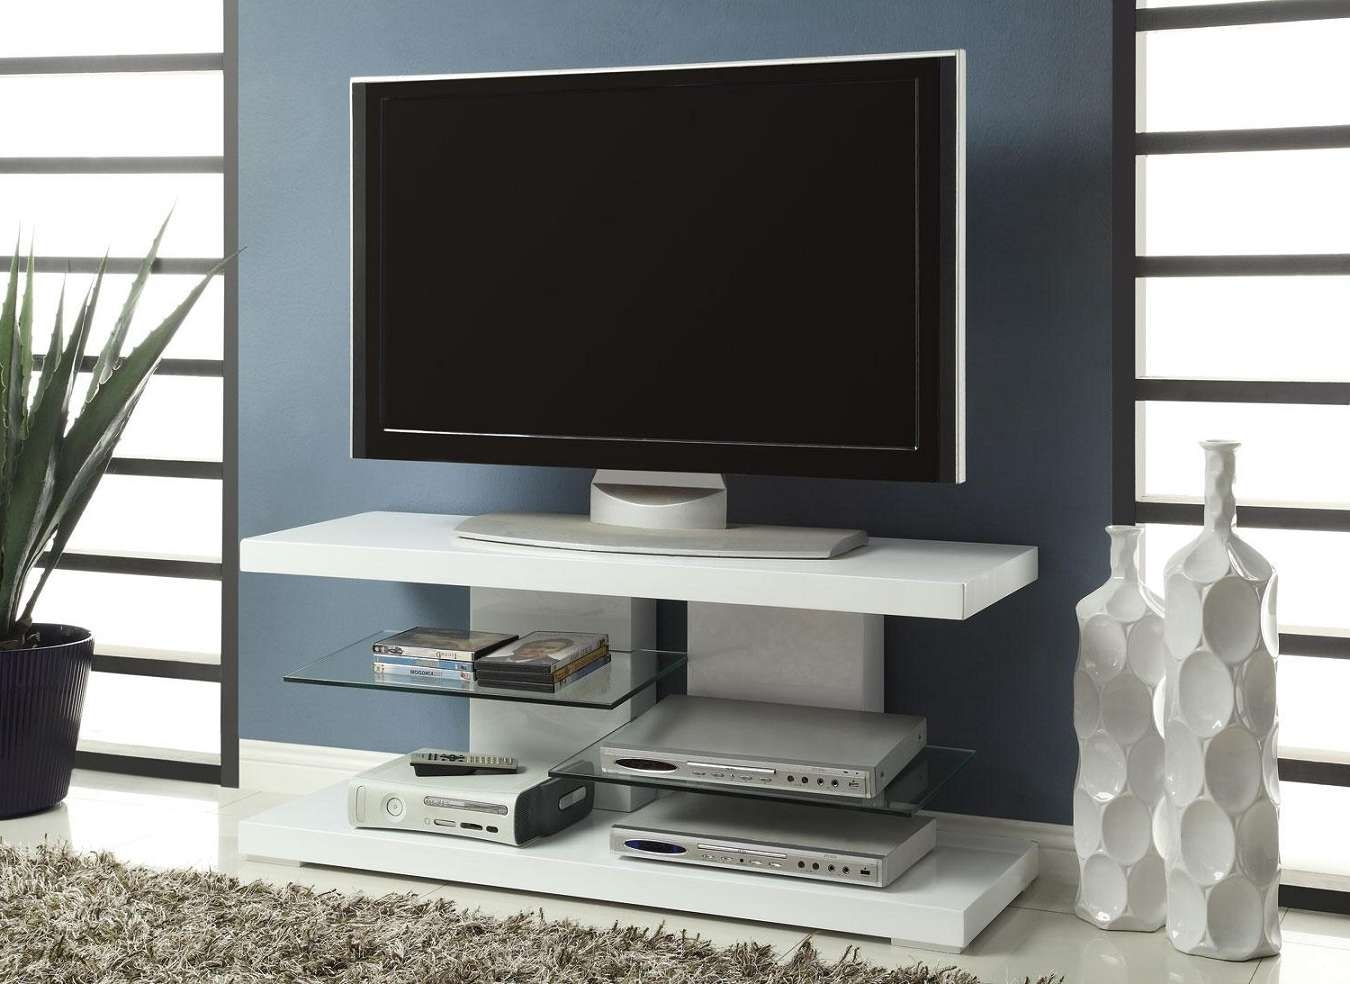 White Painted Plywood Flat Screen Tv Stand With Tempered Glass With Regard To Modern Tv Cabinets For Flat Screens (View 20 of 20)